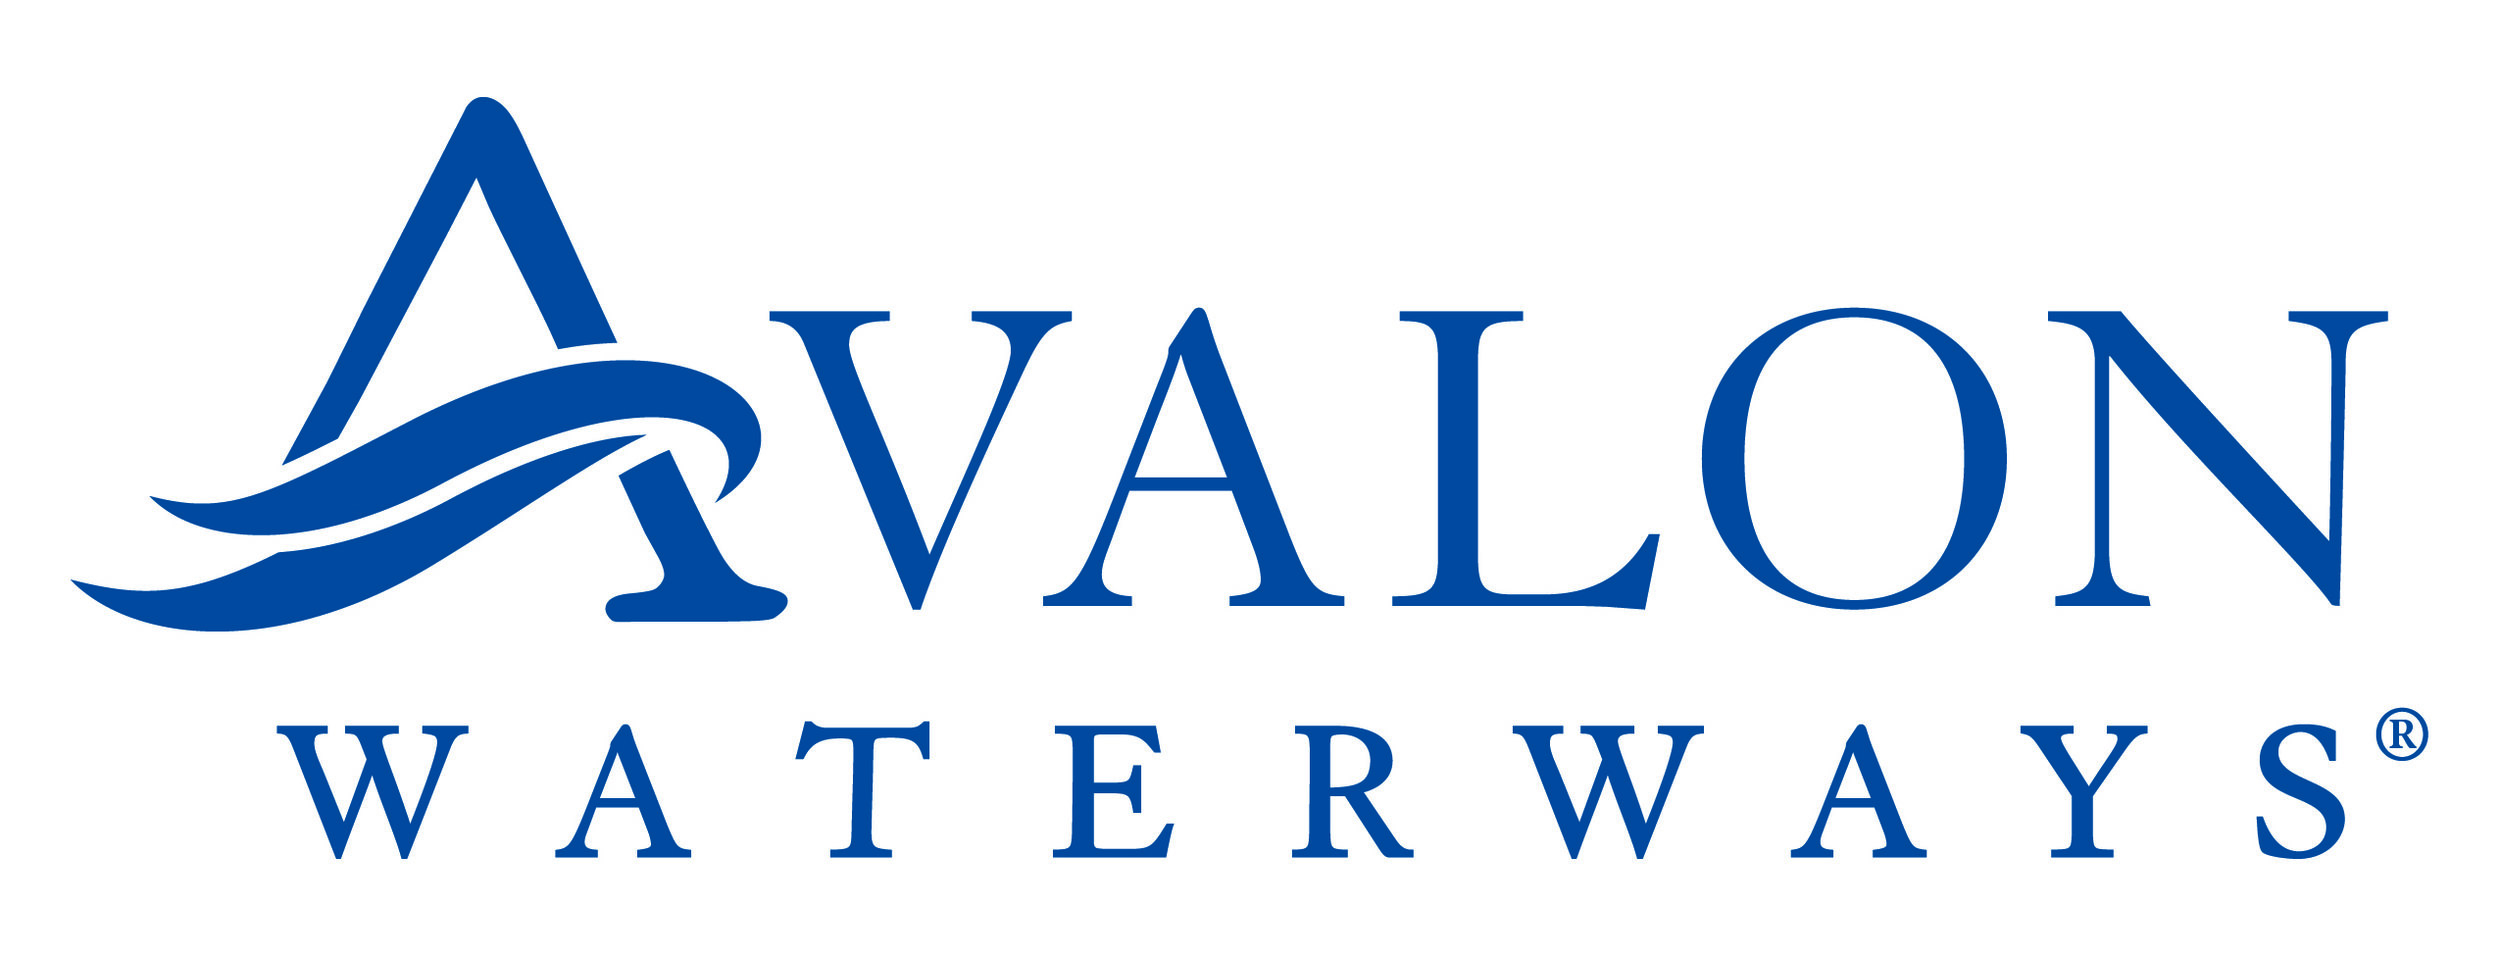 Avalon-logo_blue.jpg